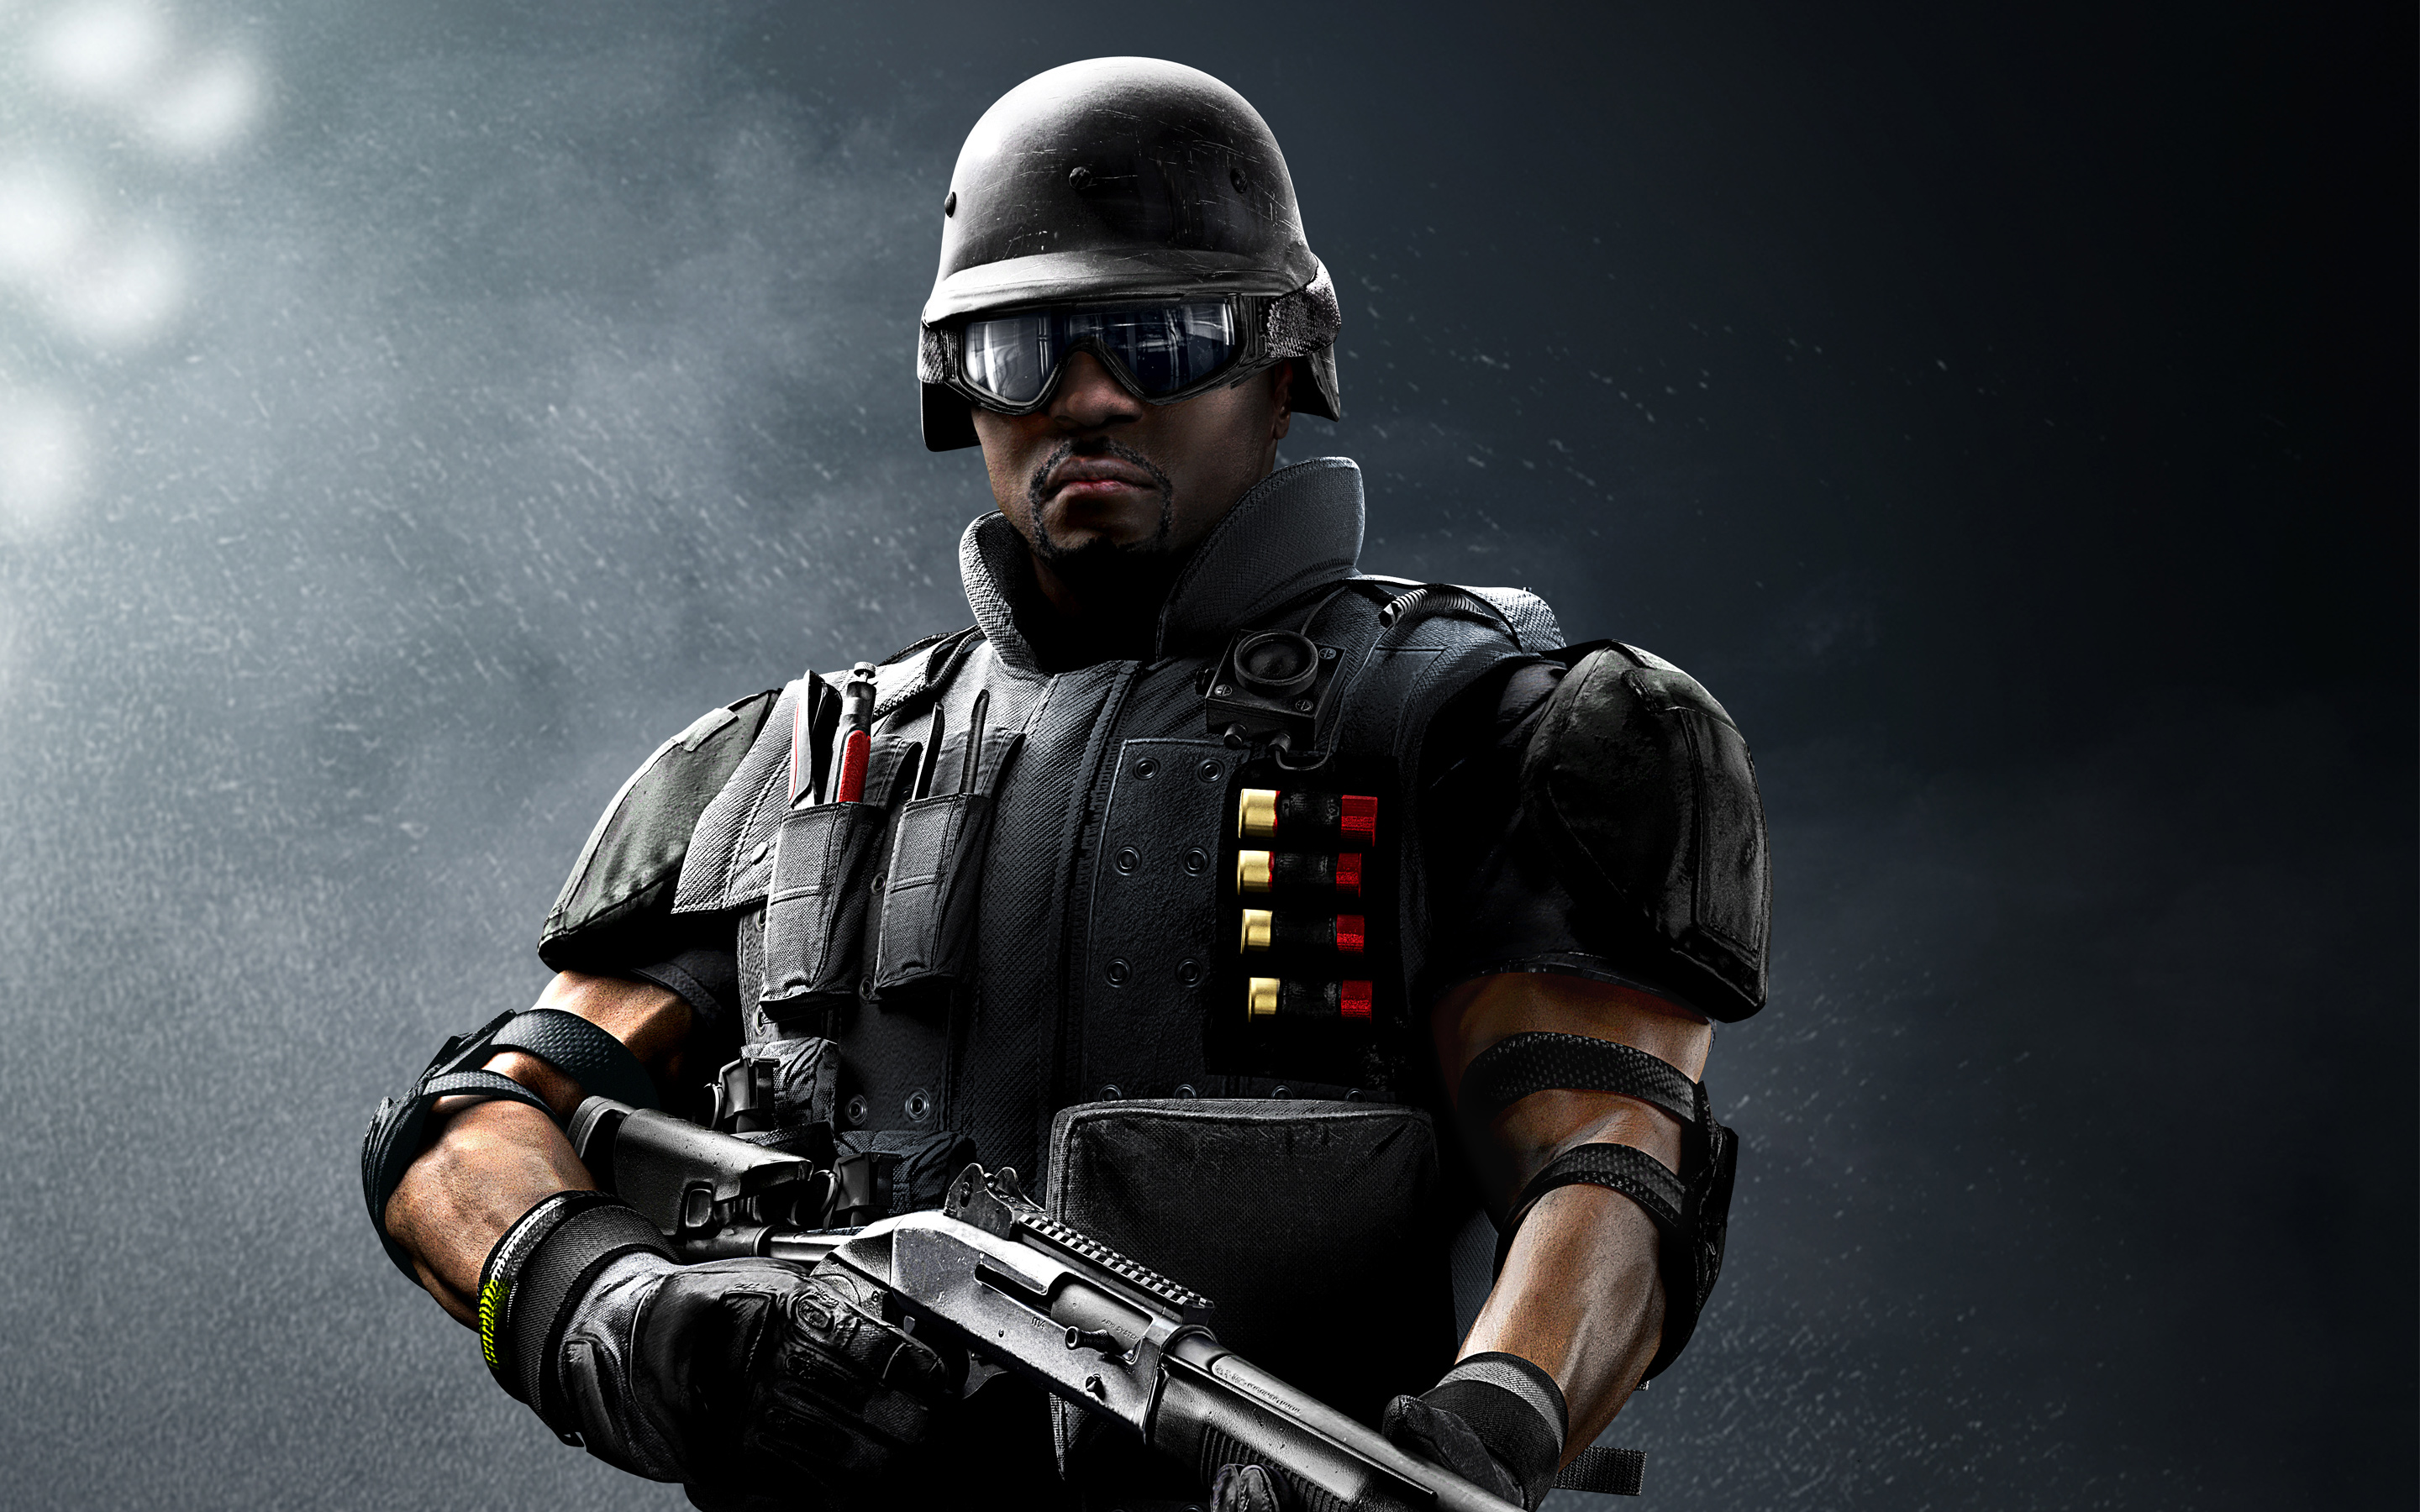 Swat 4k Wallpapers For Your Desktop Or Mobile Screen Free And Easy